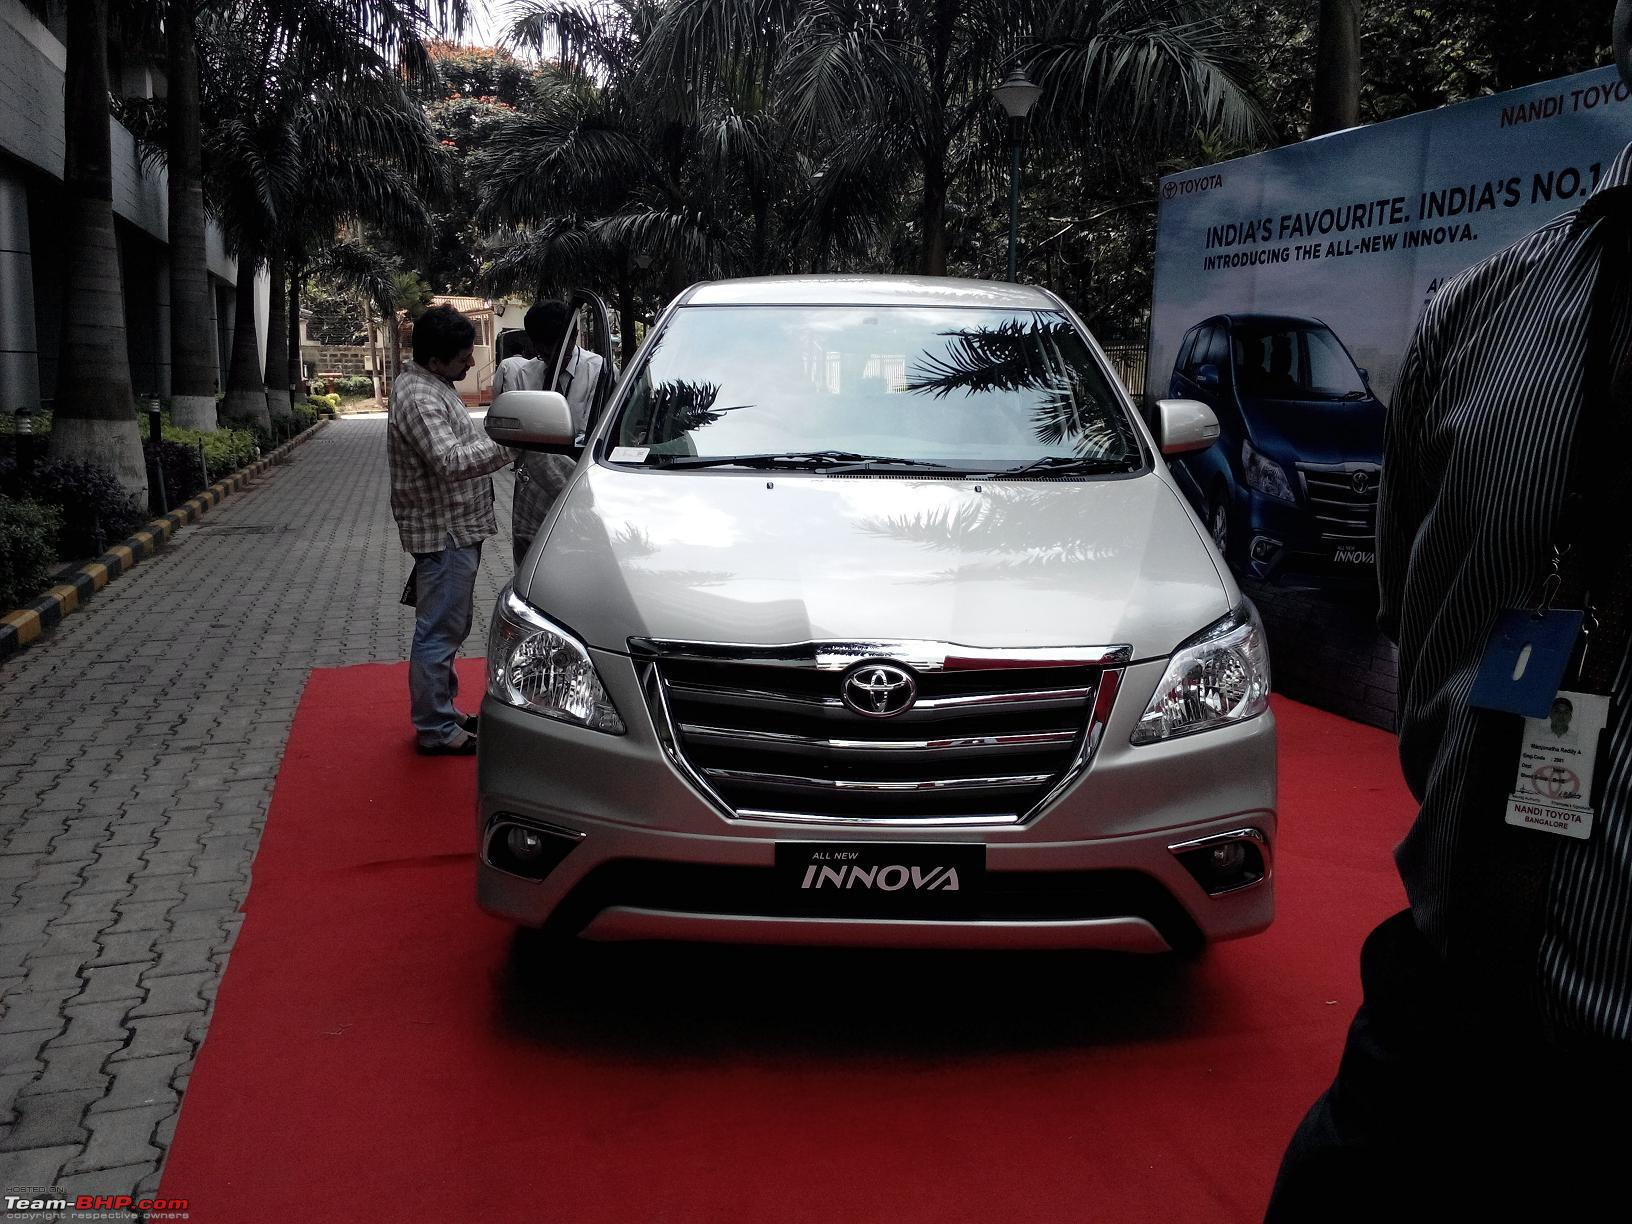 2014 toyota innova facelift now launched img_20131010_125246058 jpg